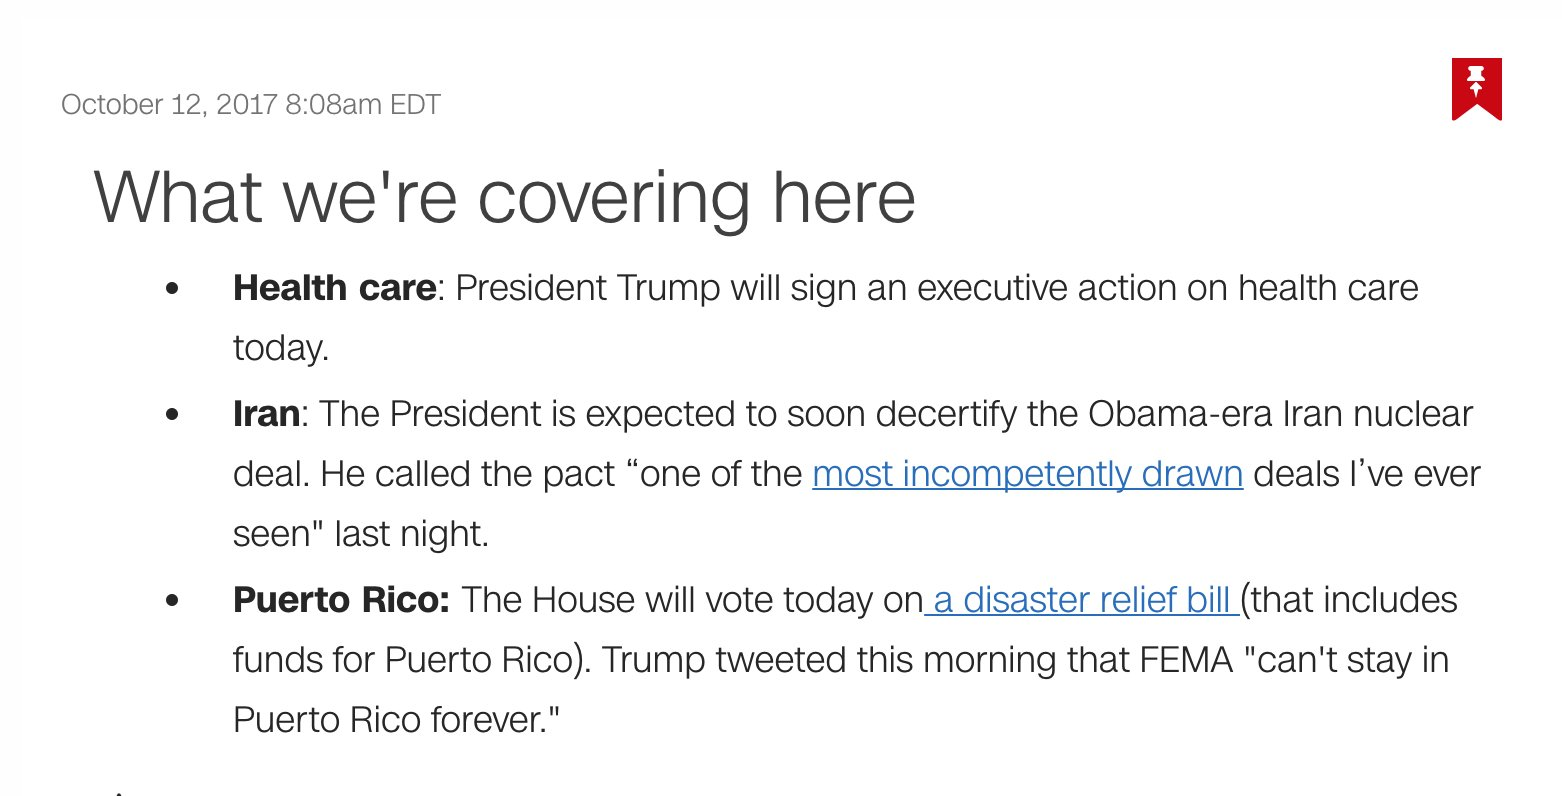 President Trump will sign an executive action on health care today. Follow for live updates: https://t.co/bzmaiNHp4J https://t.co/MyCD7PLf21